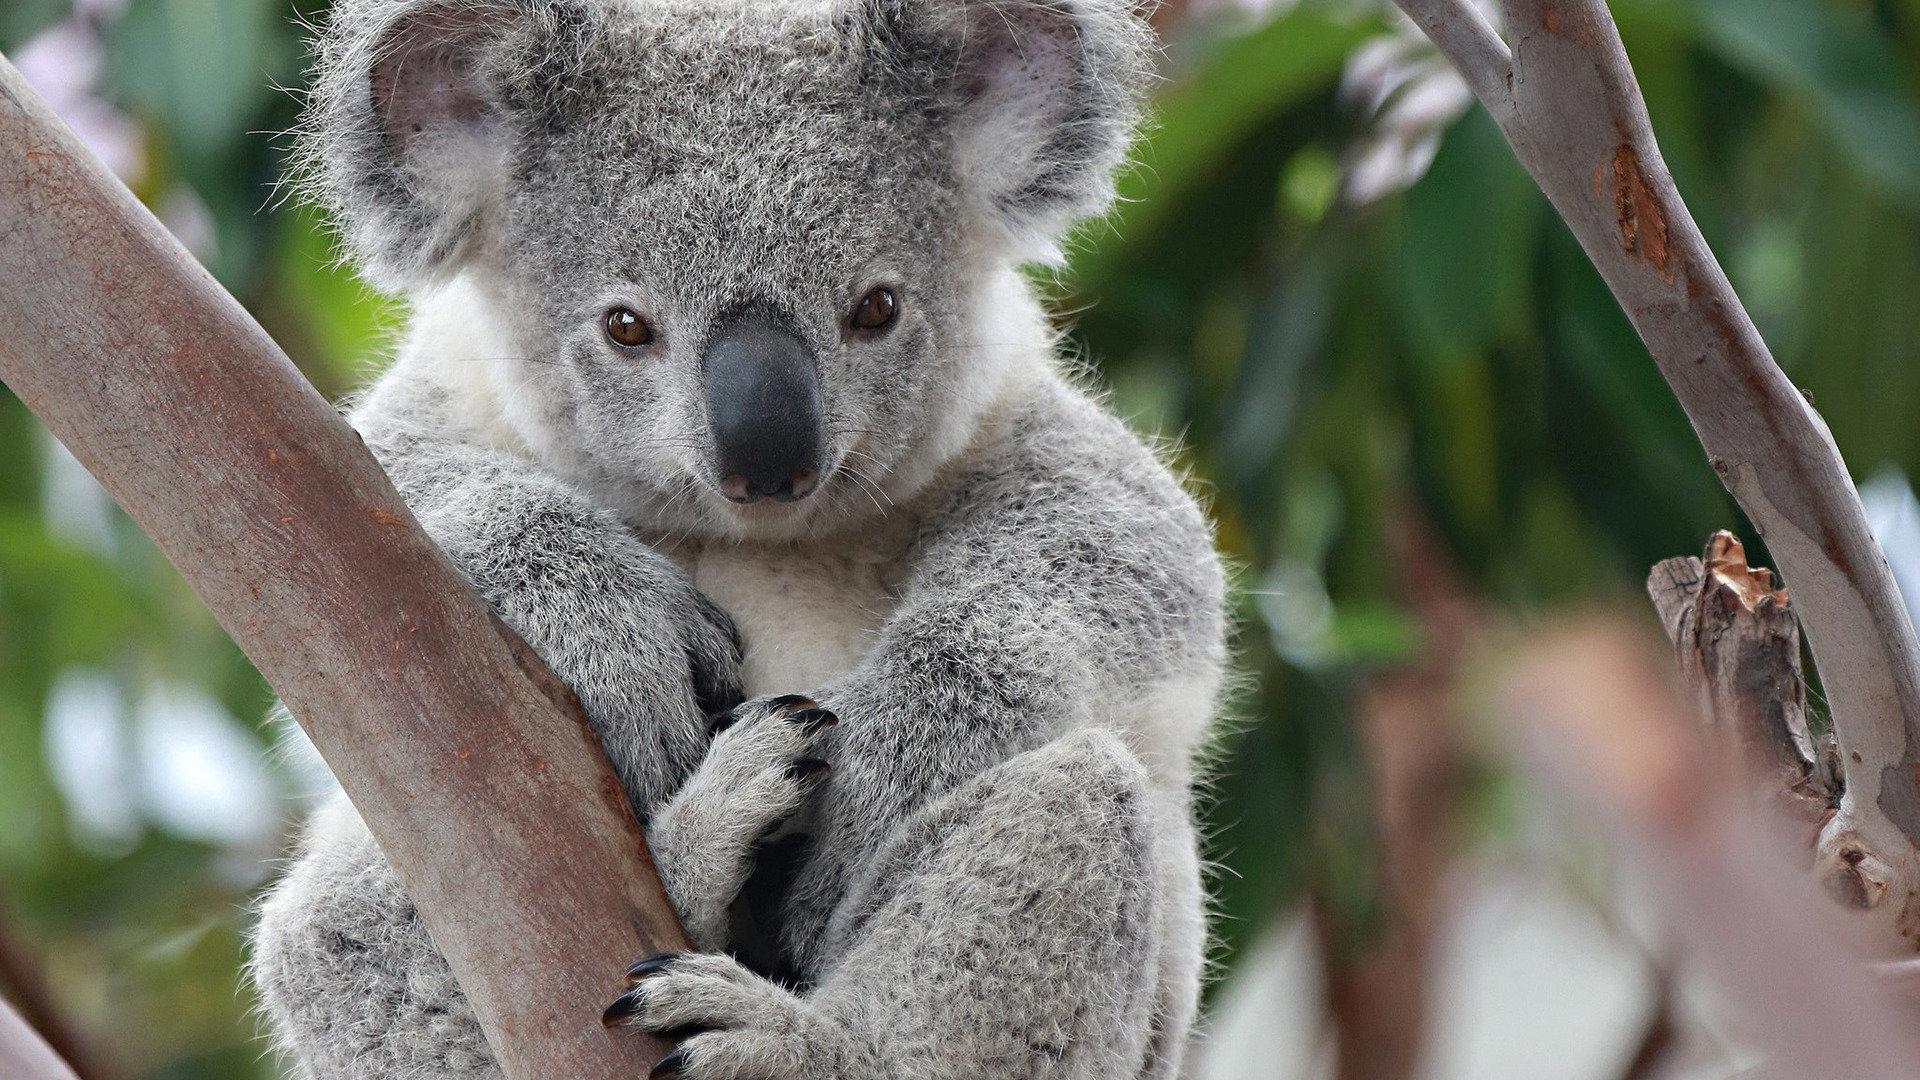 Download full hd 1080p Koala computer wallpaper ID:74225 for free